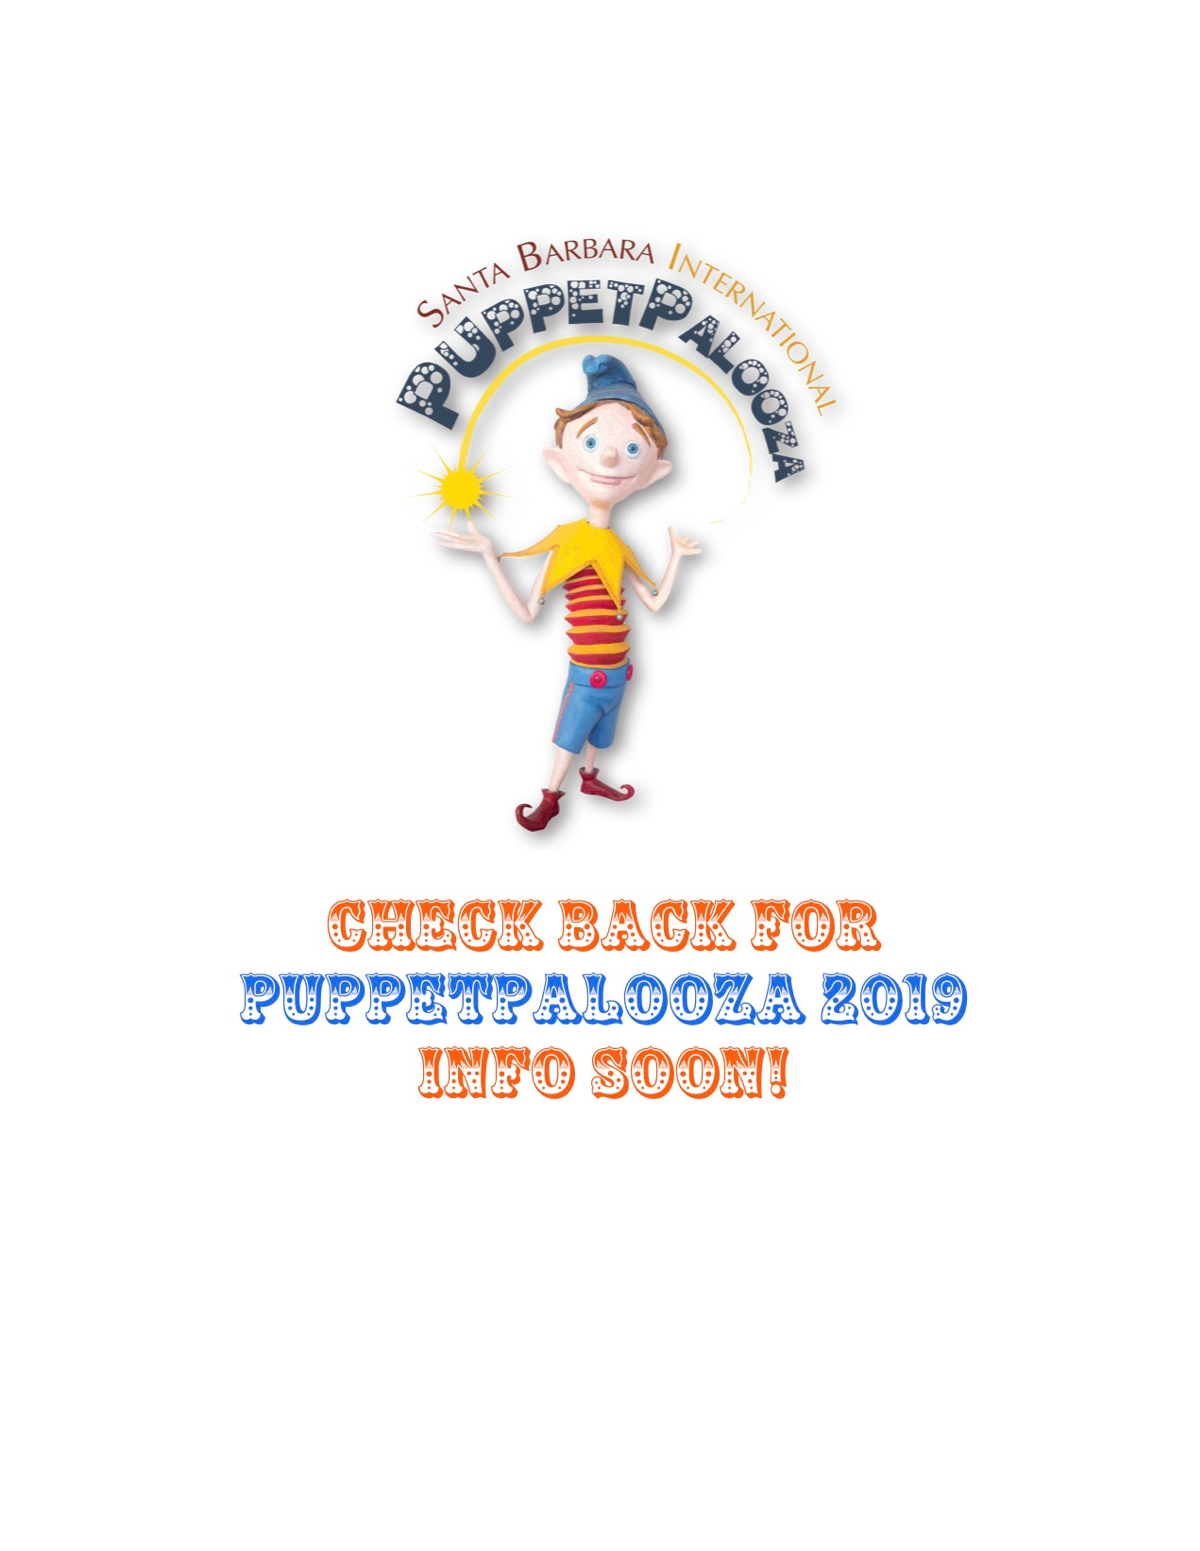 Check back for PuppetPalooza 2019 for more info!